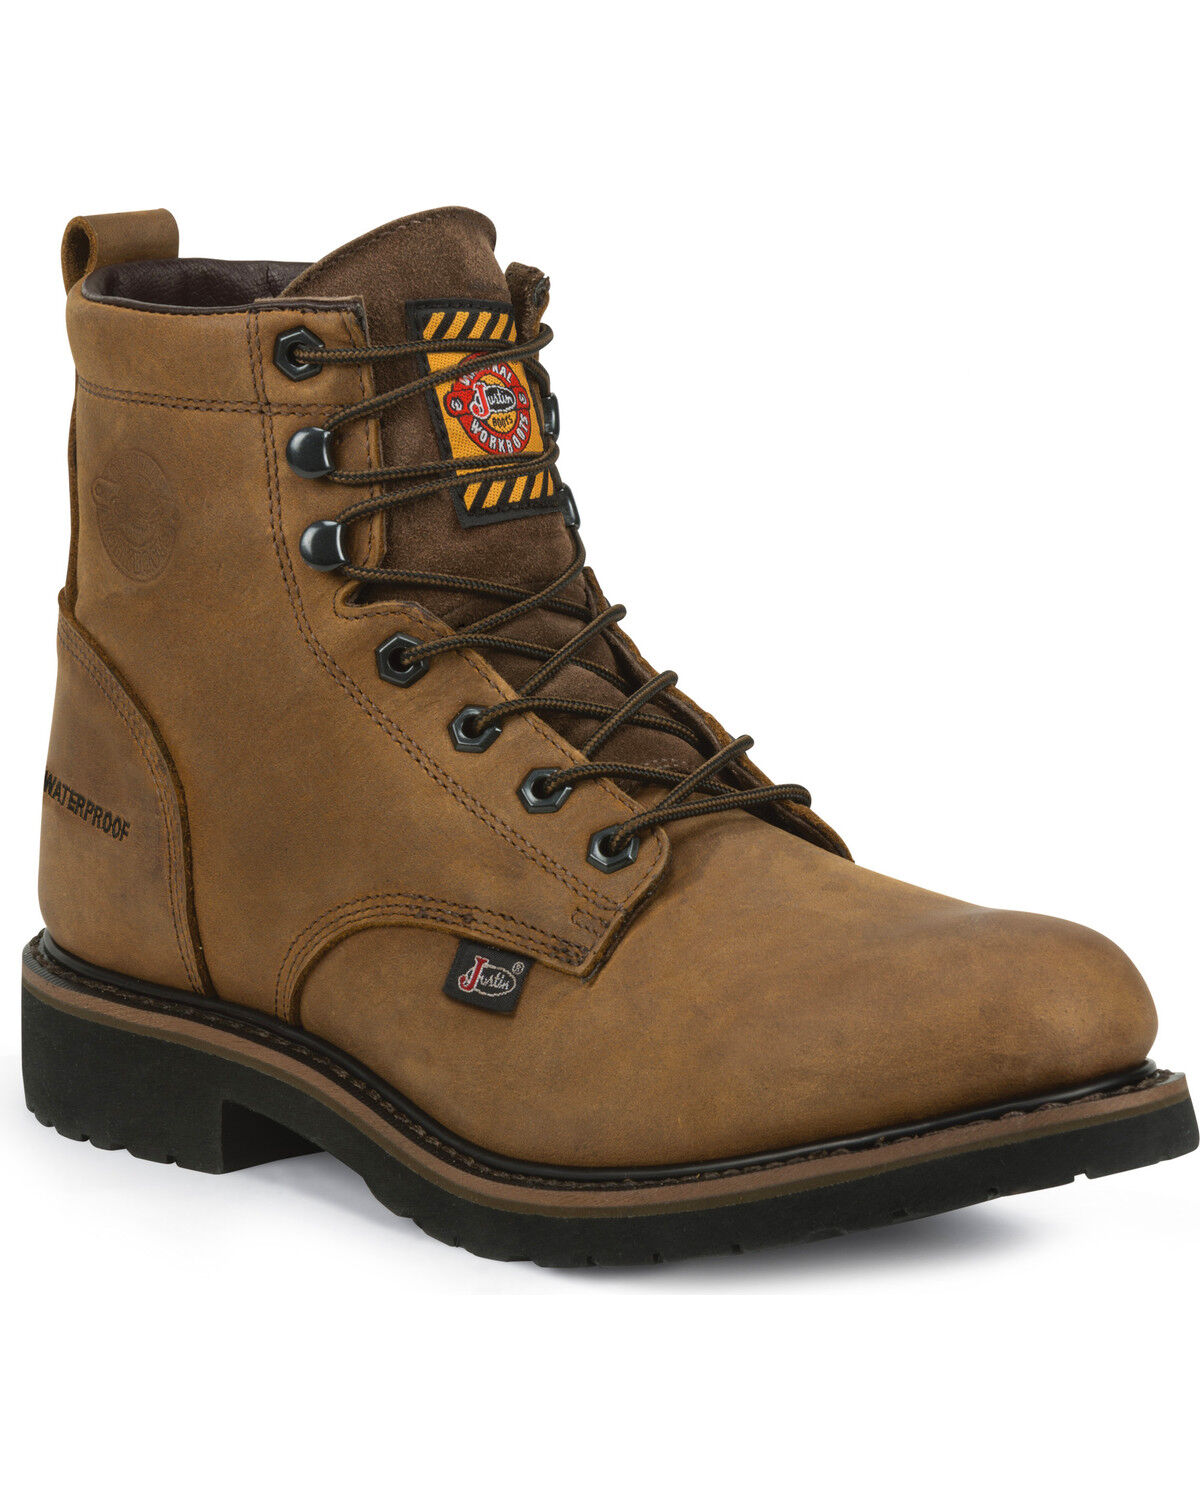 Men's Justin 6-Inch Lace-Up Work Boots